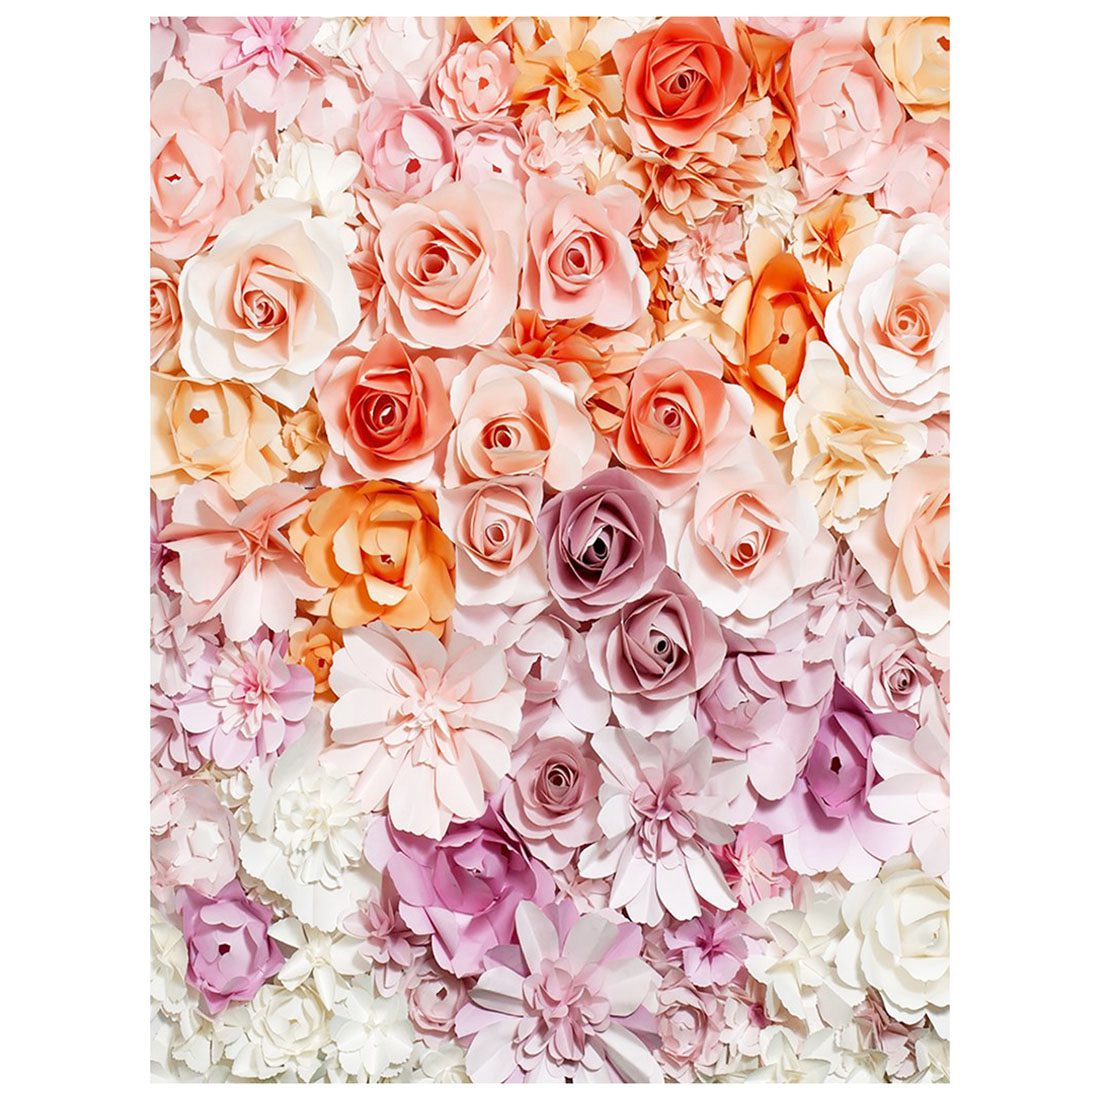 5x7ft Photography Backdrop Paper Flower wall gorgeous wedding baby shower Beautiful bride background props photocall folding type laser cut design bride groom wedding invitations kit blank insert paper invitation card convite casamento